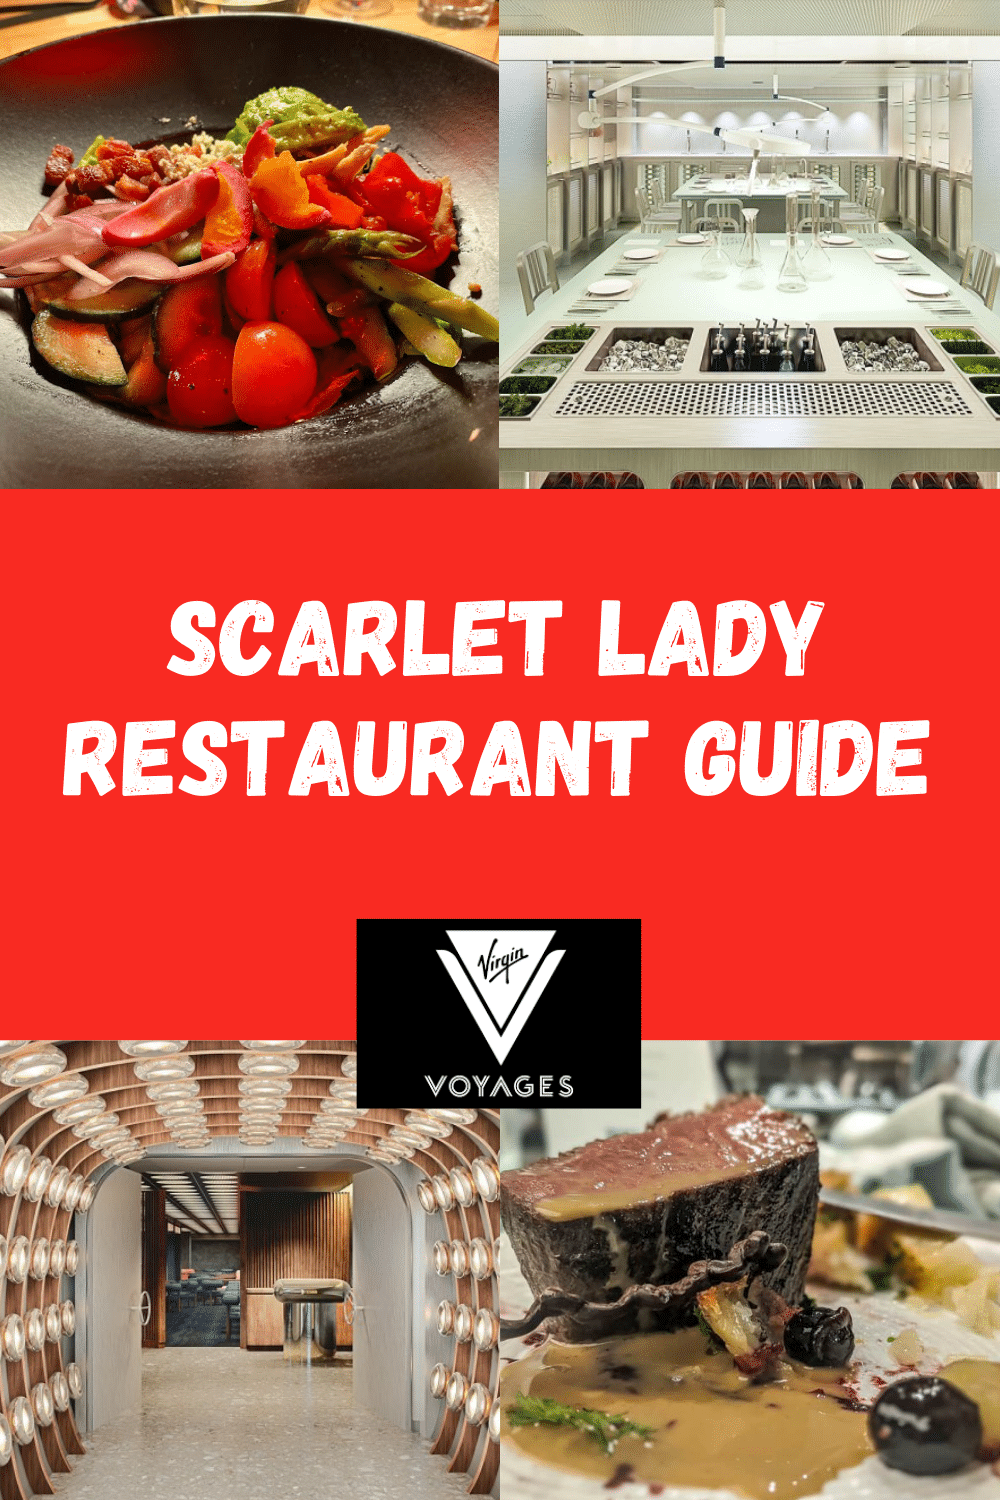 What can you expect from Scarlet Lady restaurants? Virgin Voyages promises new dining concepts and epic eats onboard its first cruise ship.